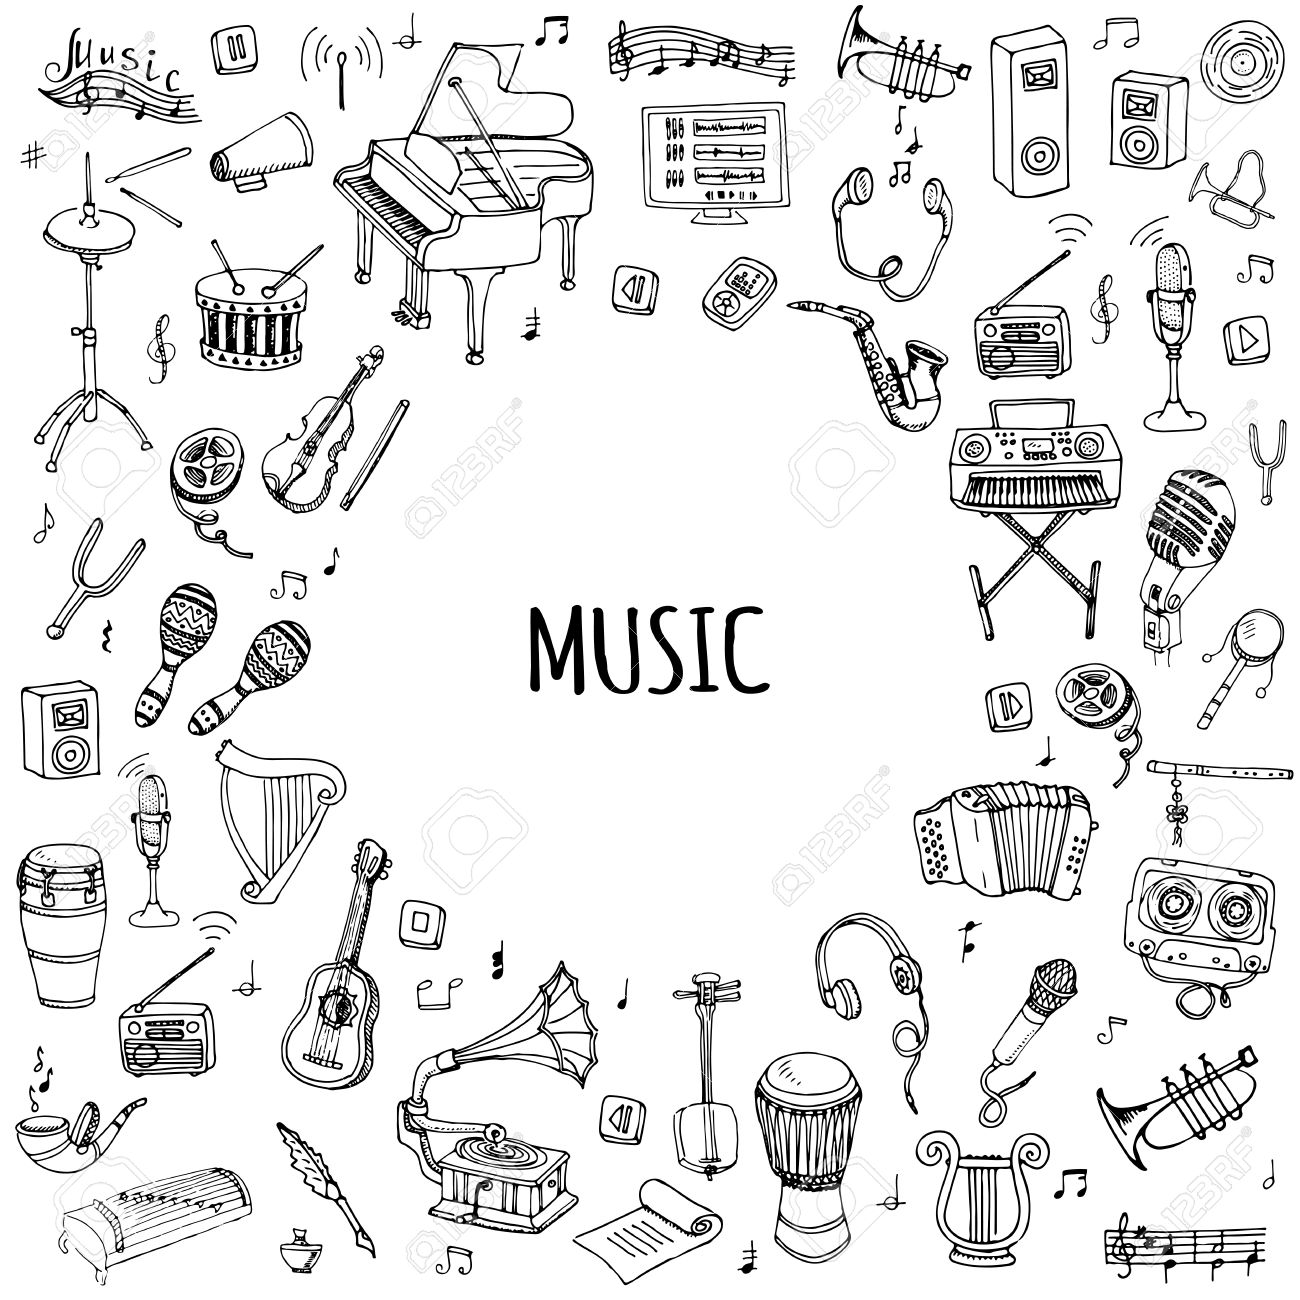 Hand drawn doodle music set vector illustration musical instrument hand drawn doodle music set vector illustration musical instrument and symbols icons collections cartoon sound concept biocorpaavc Gallery